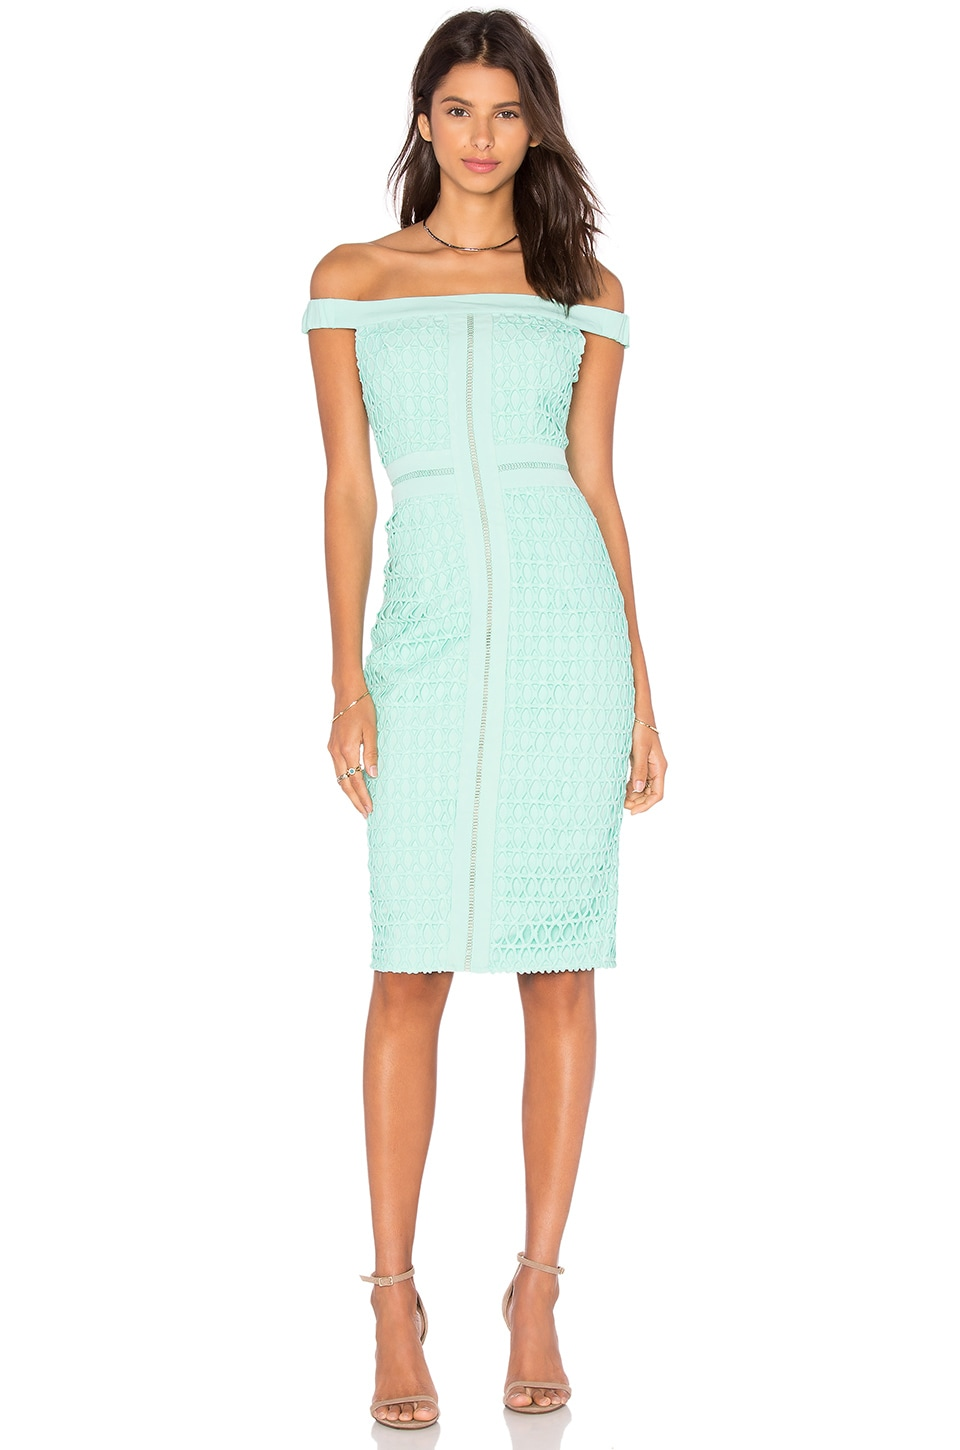 Lumier Blame Game Lace Dress in Mint